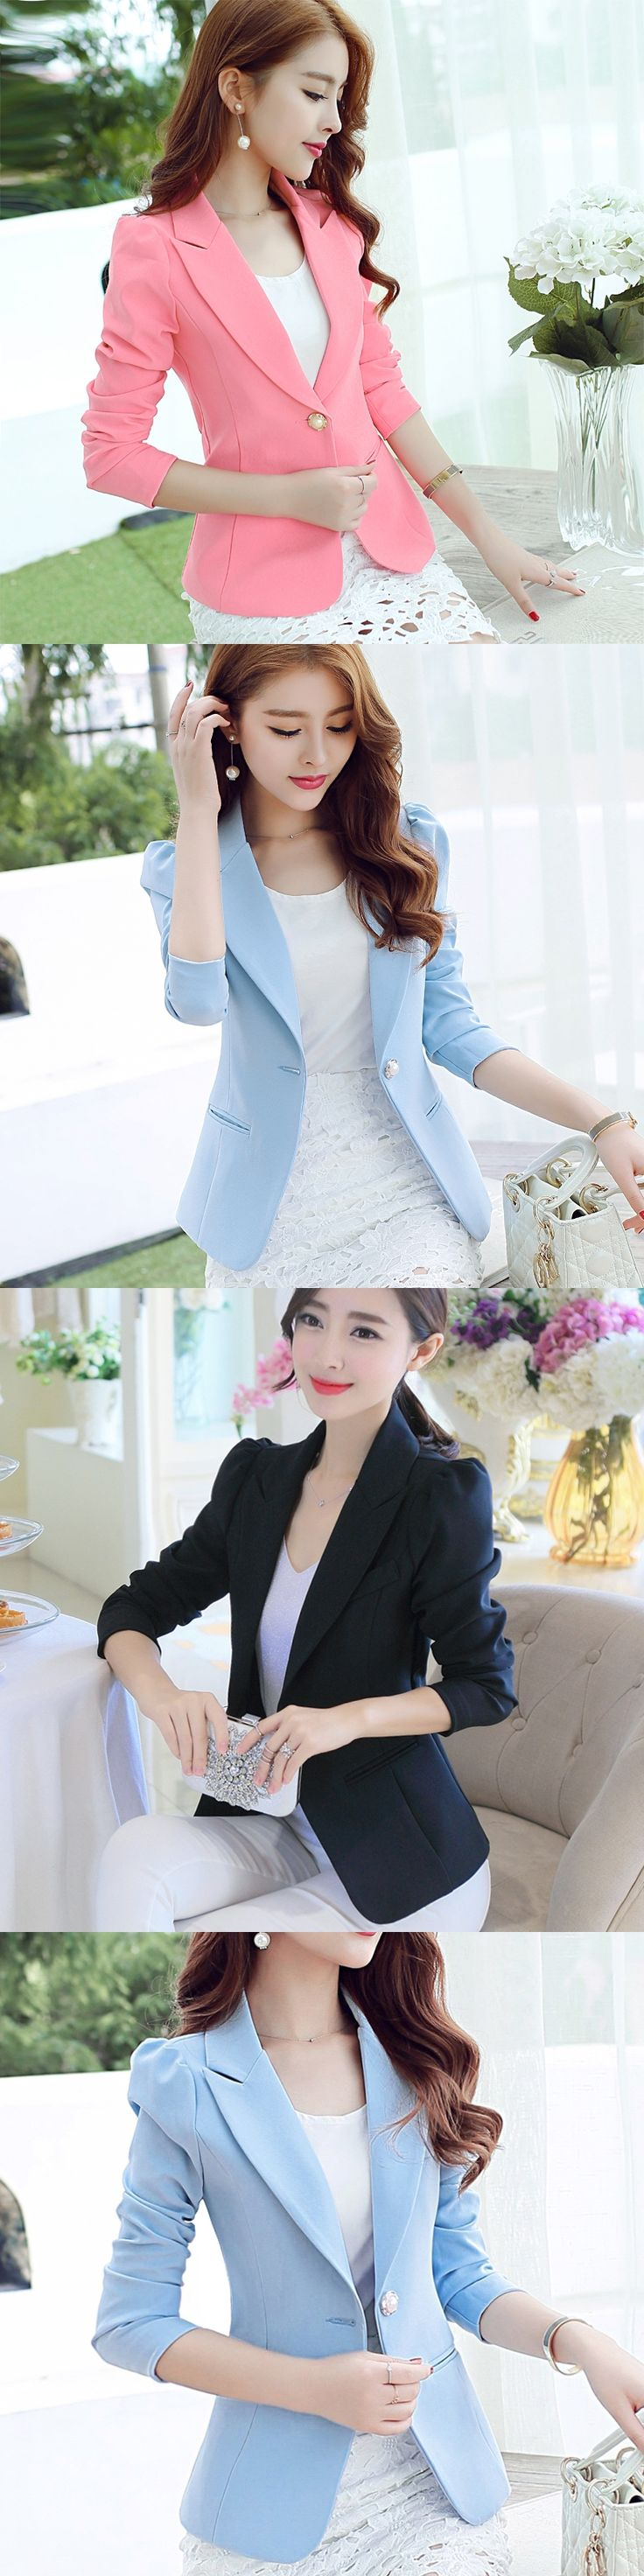 Women Blazer 2017 Long-sleeved Slim Blazer Mujer Office Suits For Women Ladies Blazer Jacket Blazer Pink/blue/black/green